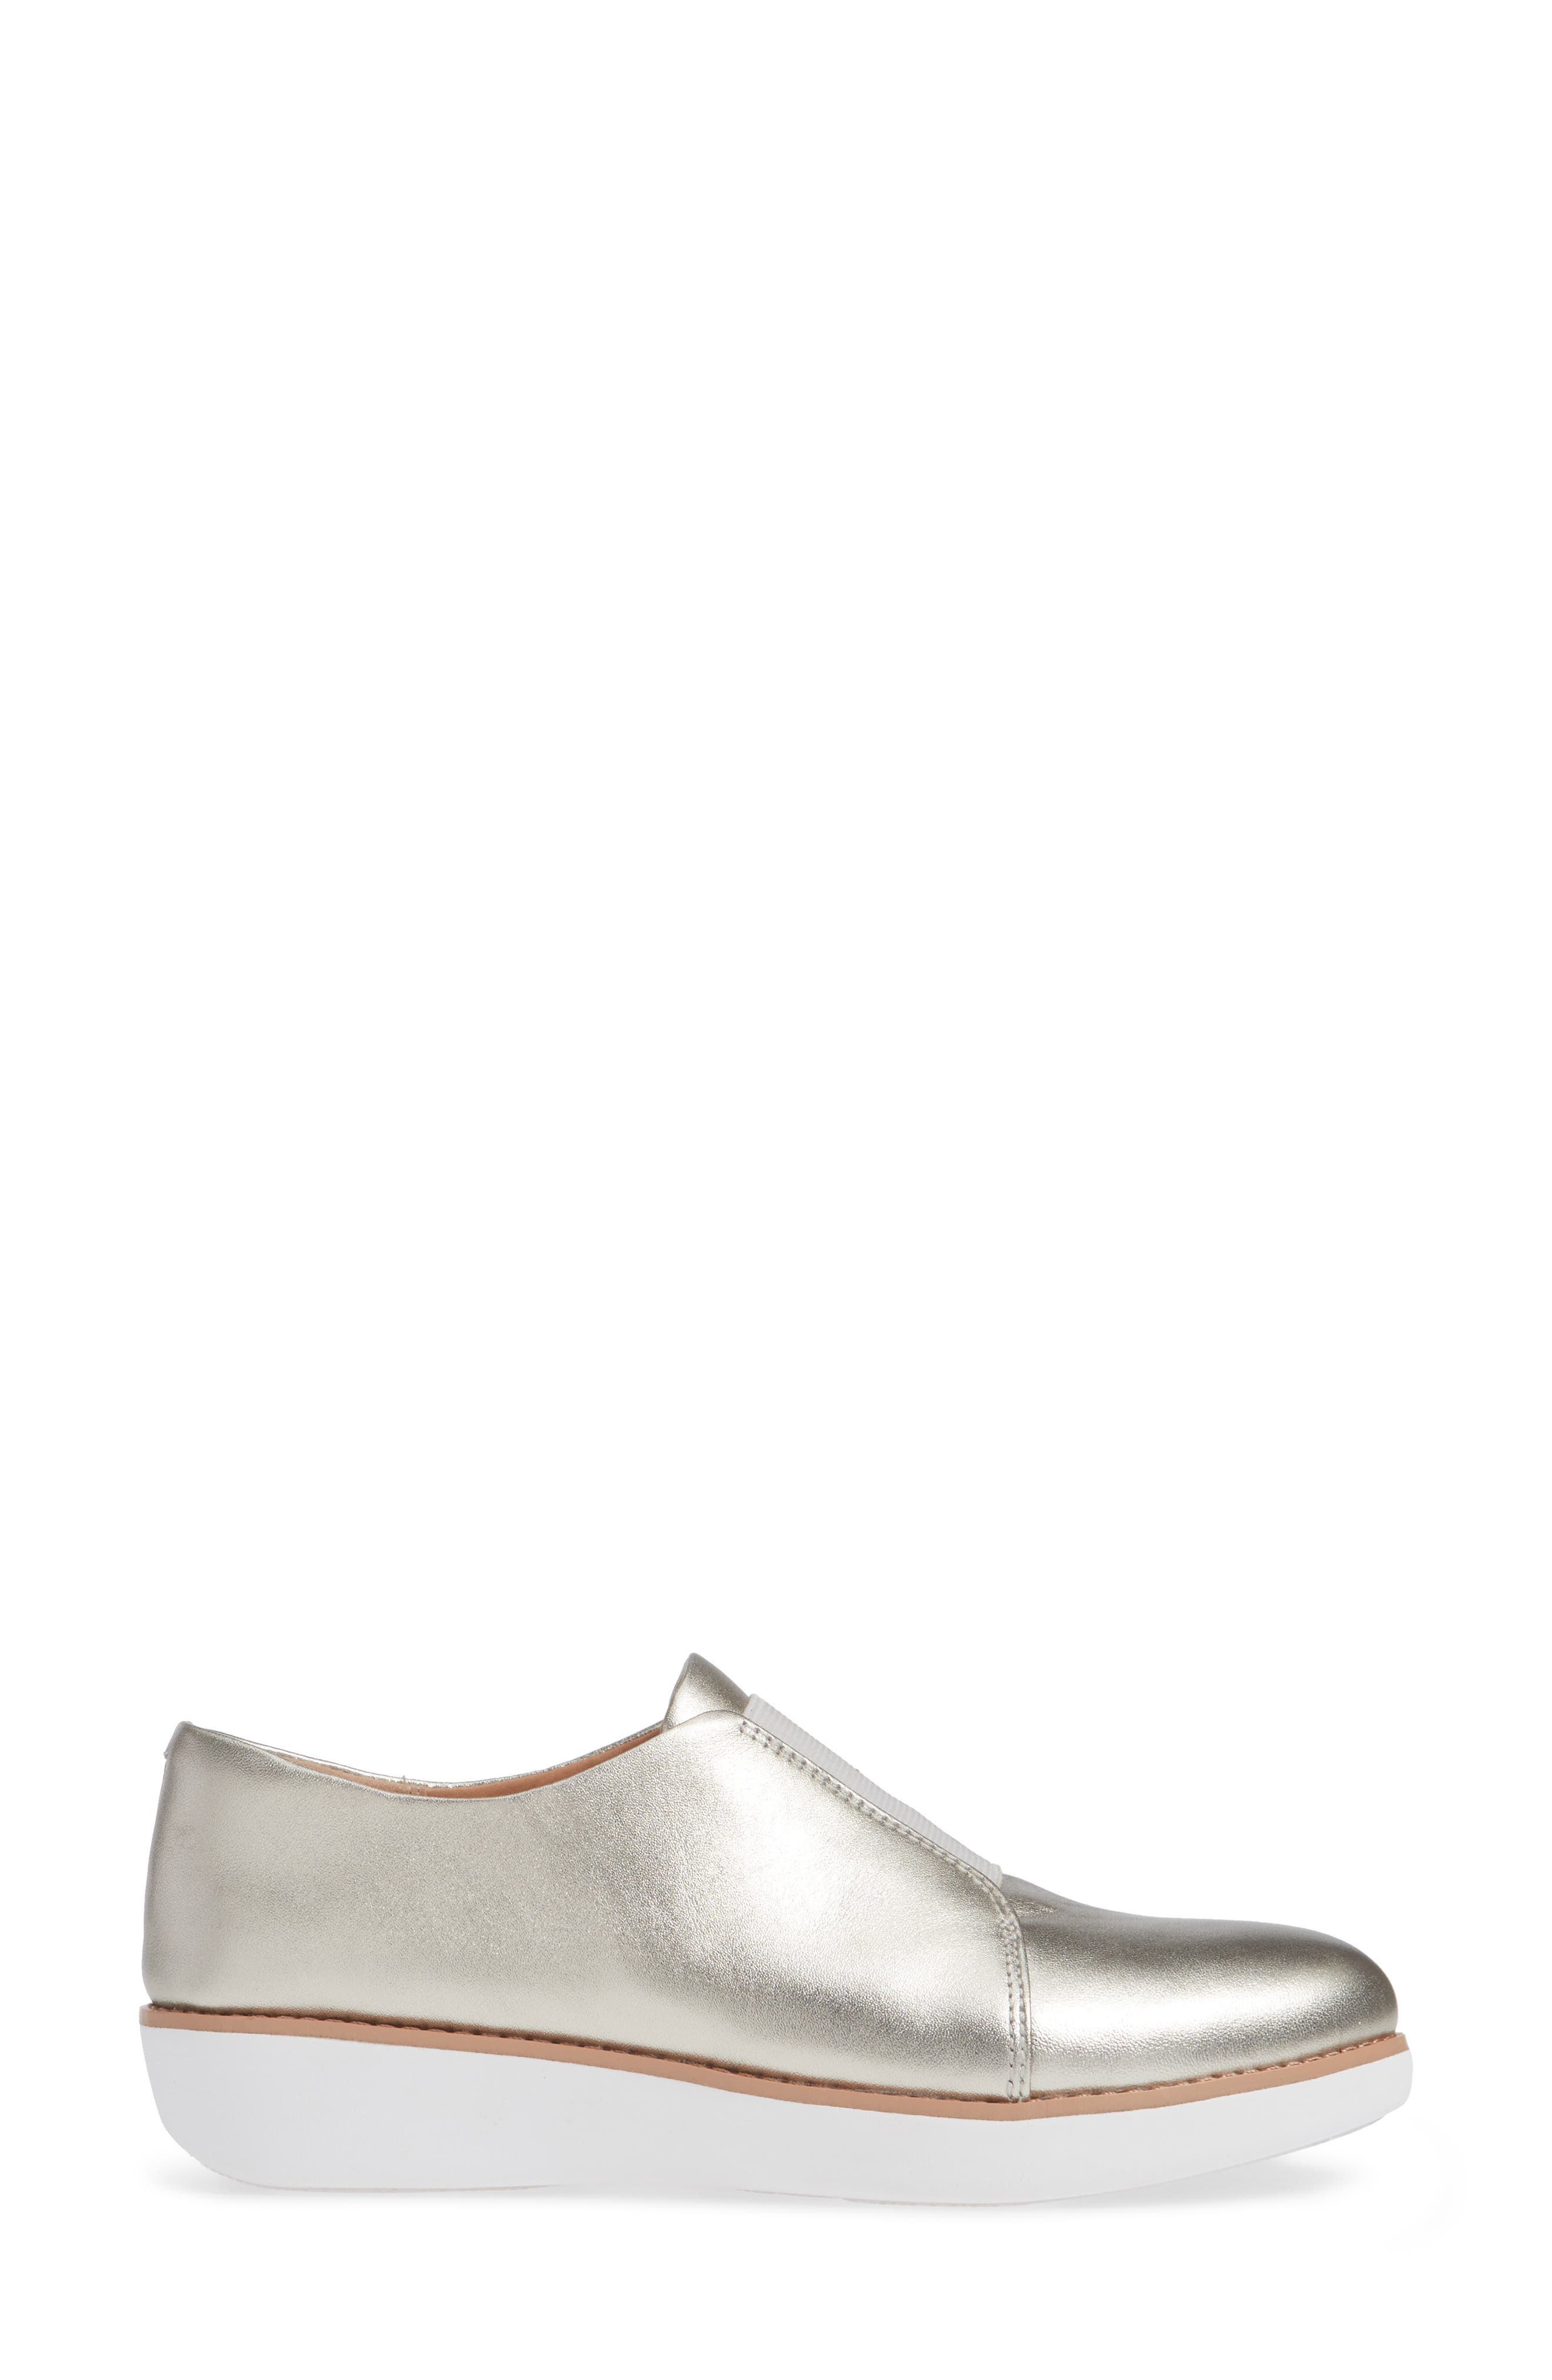 FITFLOP,                             Laceless Derby,                             Alternate thumbnail 3, color,                             SILVER LEATHER